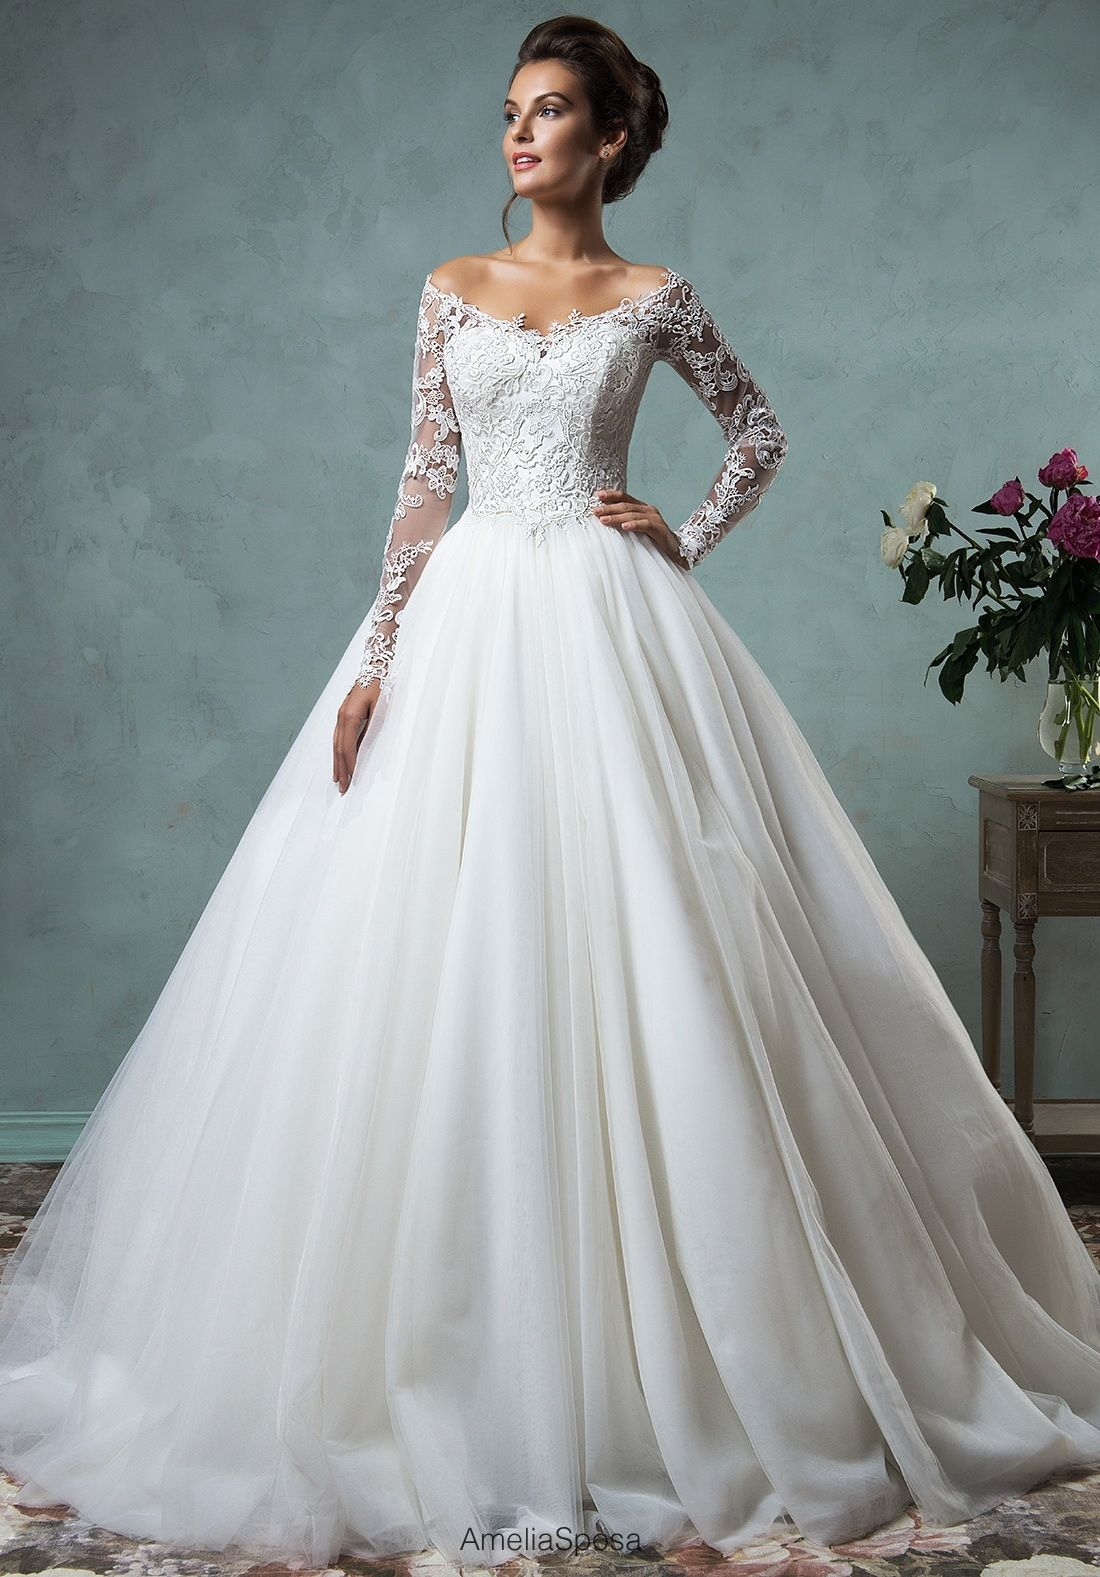 Amelia Sposa off shoulder wedding dress with lace sleeves | Wedding ...